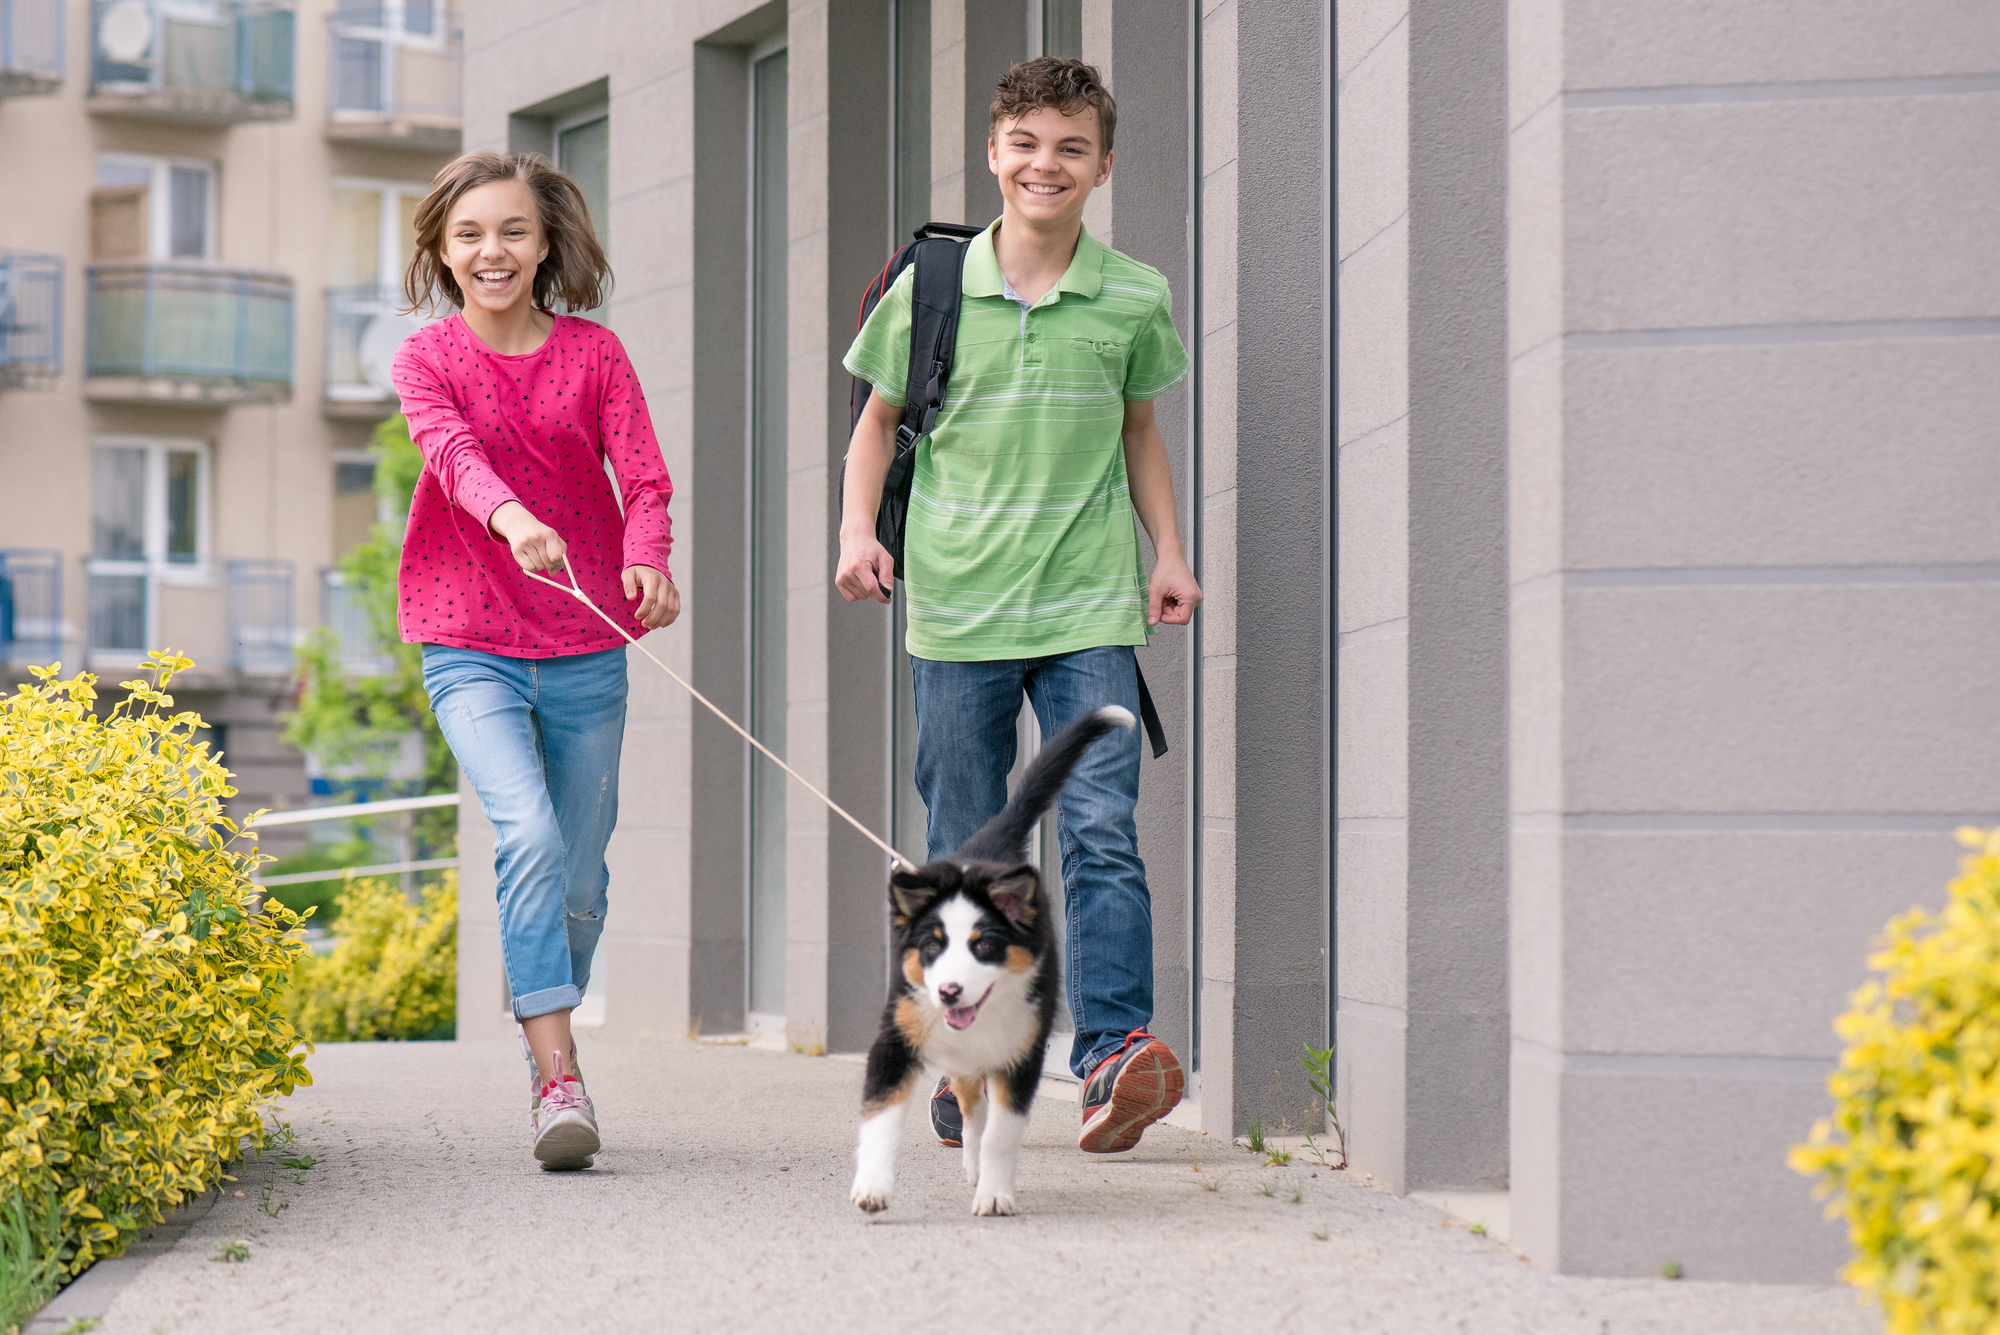 10 Best Summer Jobs for Teens-Dog Walker